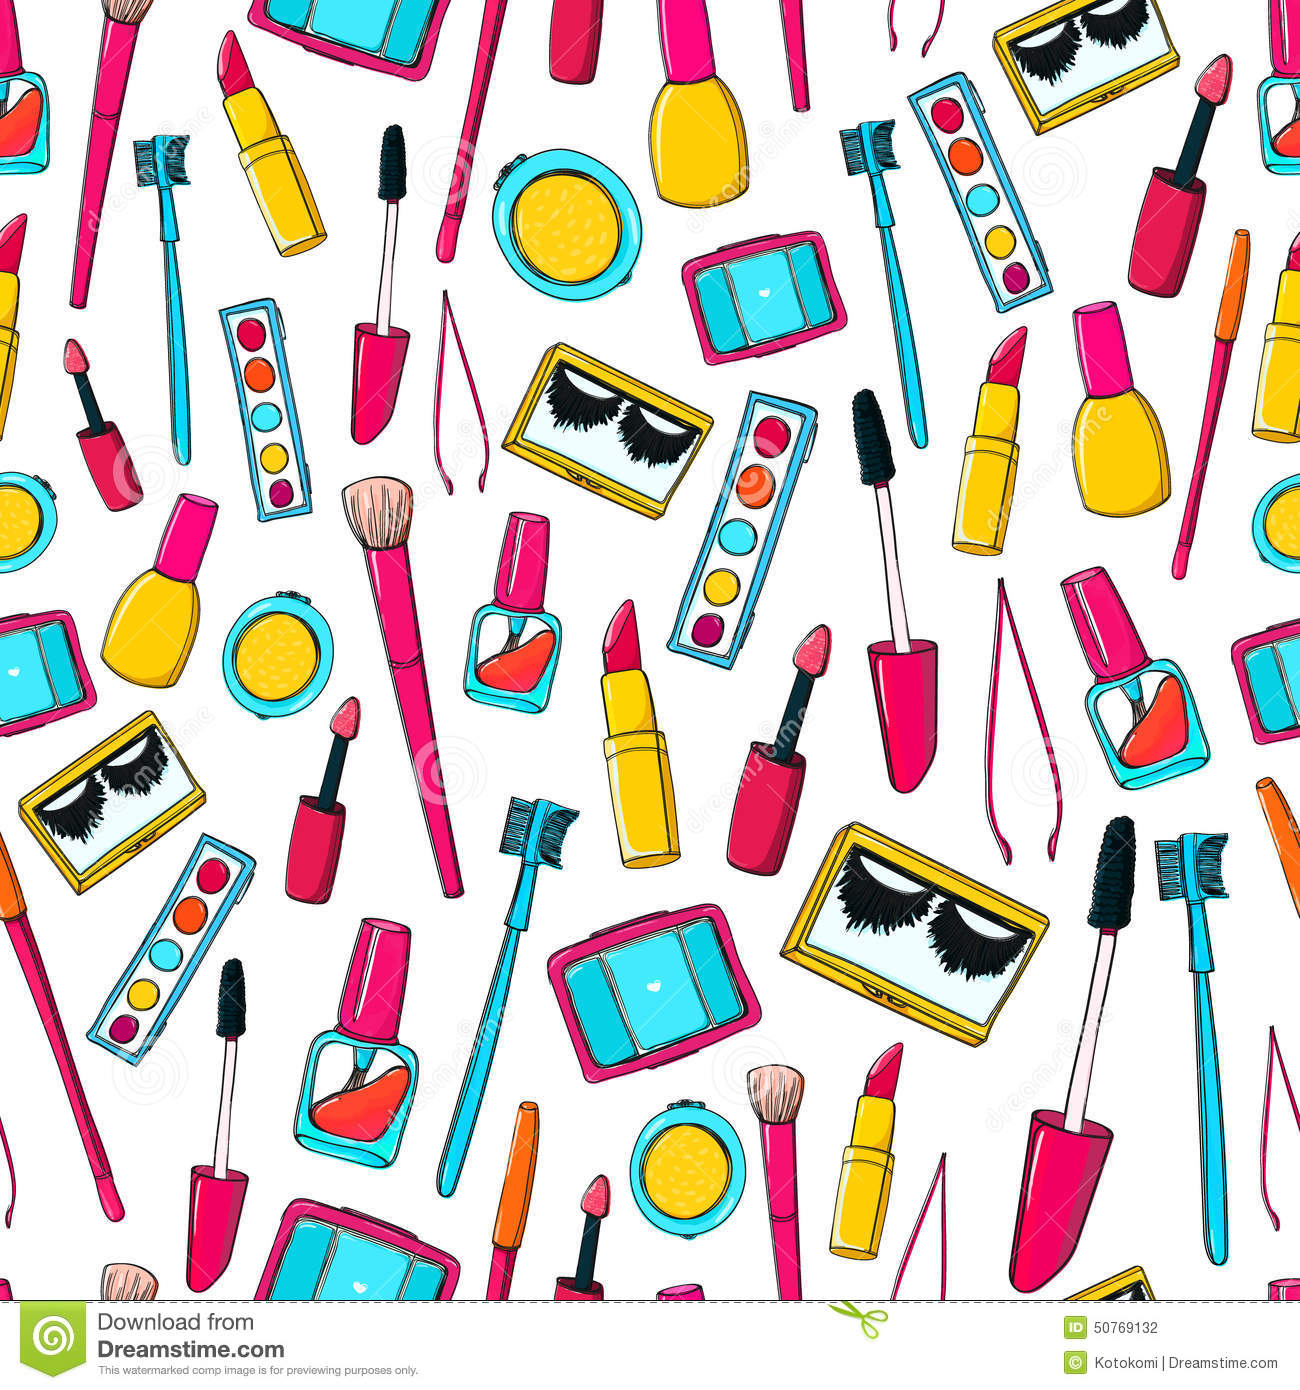 Cute Kid Wallpapers Free Download Seamless Vector Pattern With Makeup Tools Brushes Stock